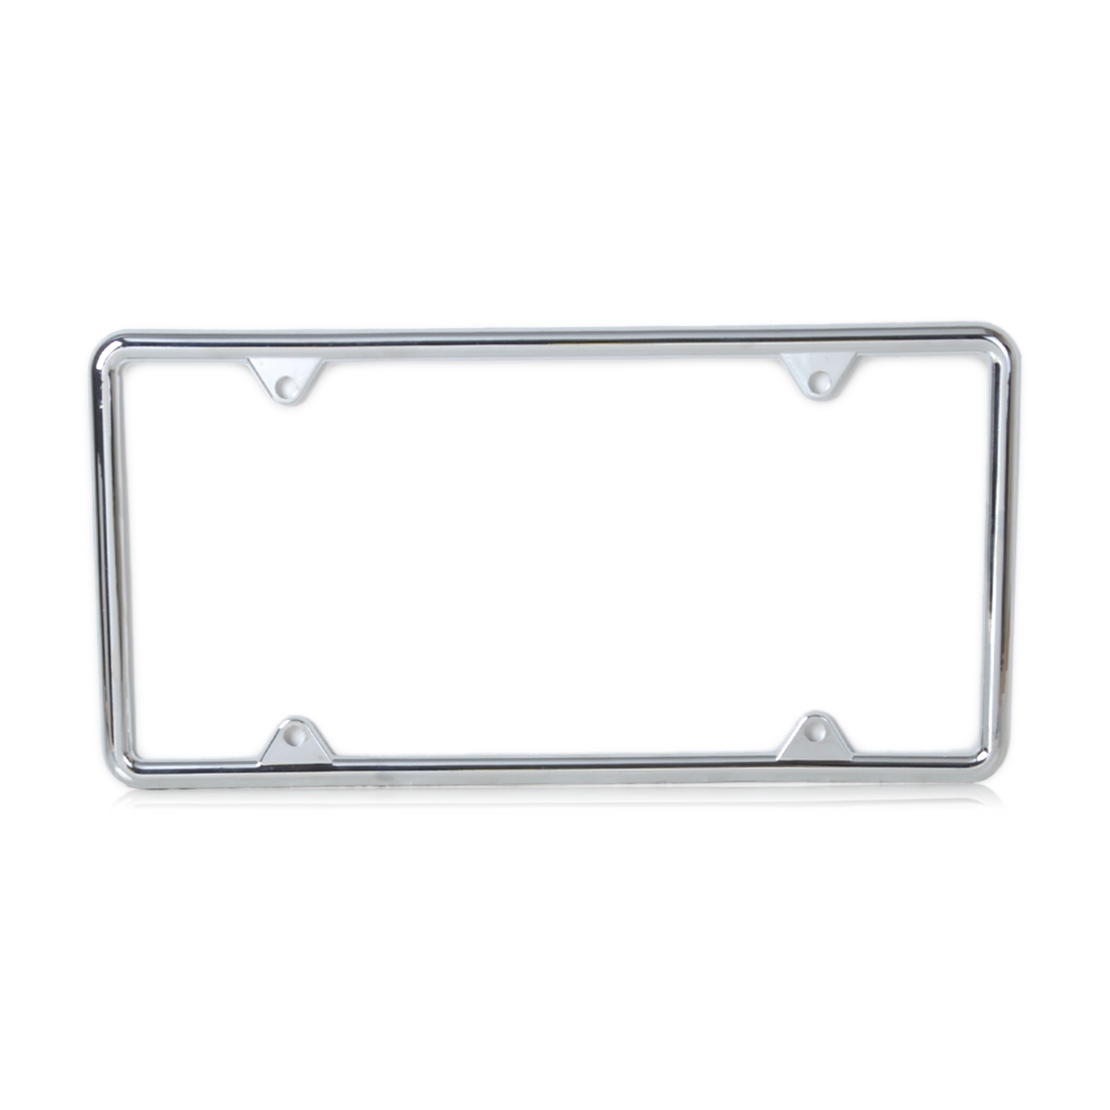 Beler Silver Zinc Alloy License Plate Frame For Almost All